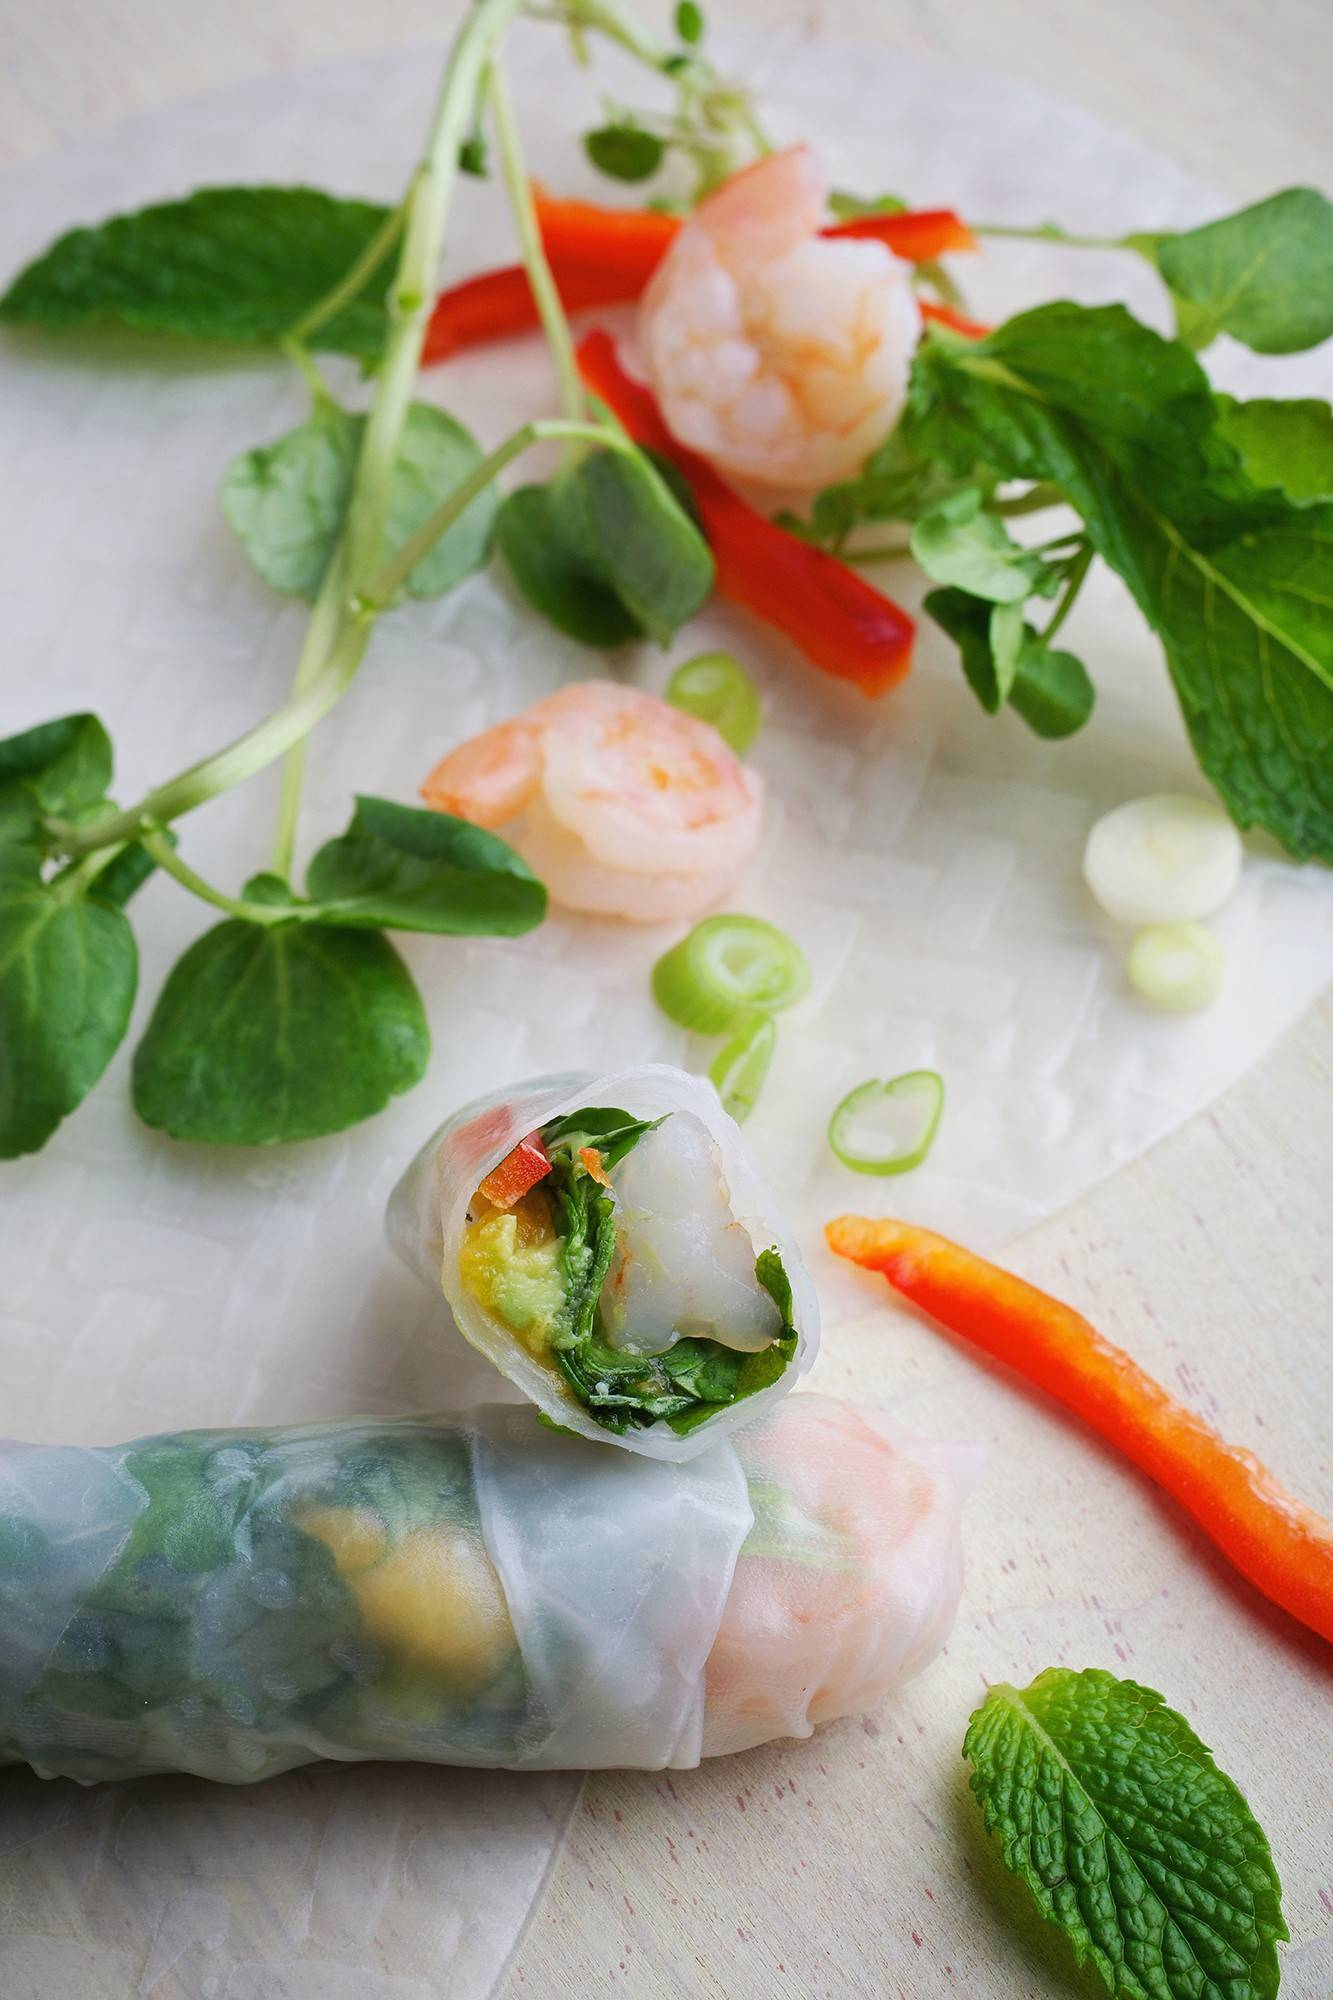 This time of year, summer rolls are a great way to use such powerhouse foods as watercress without falling into a salad slump.